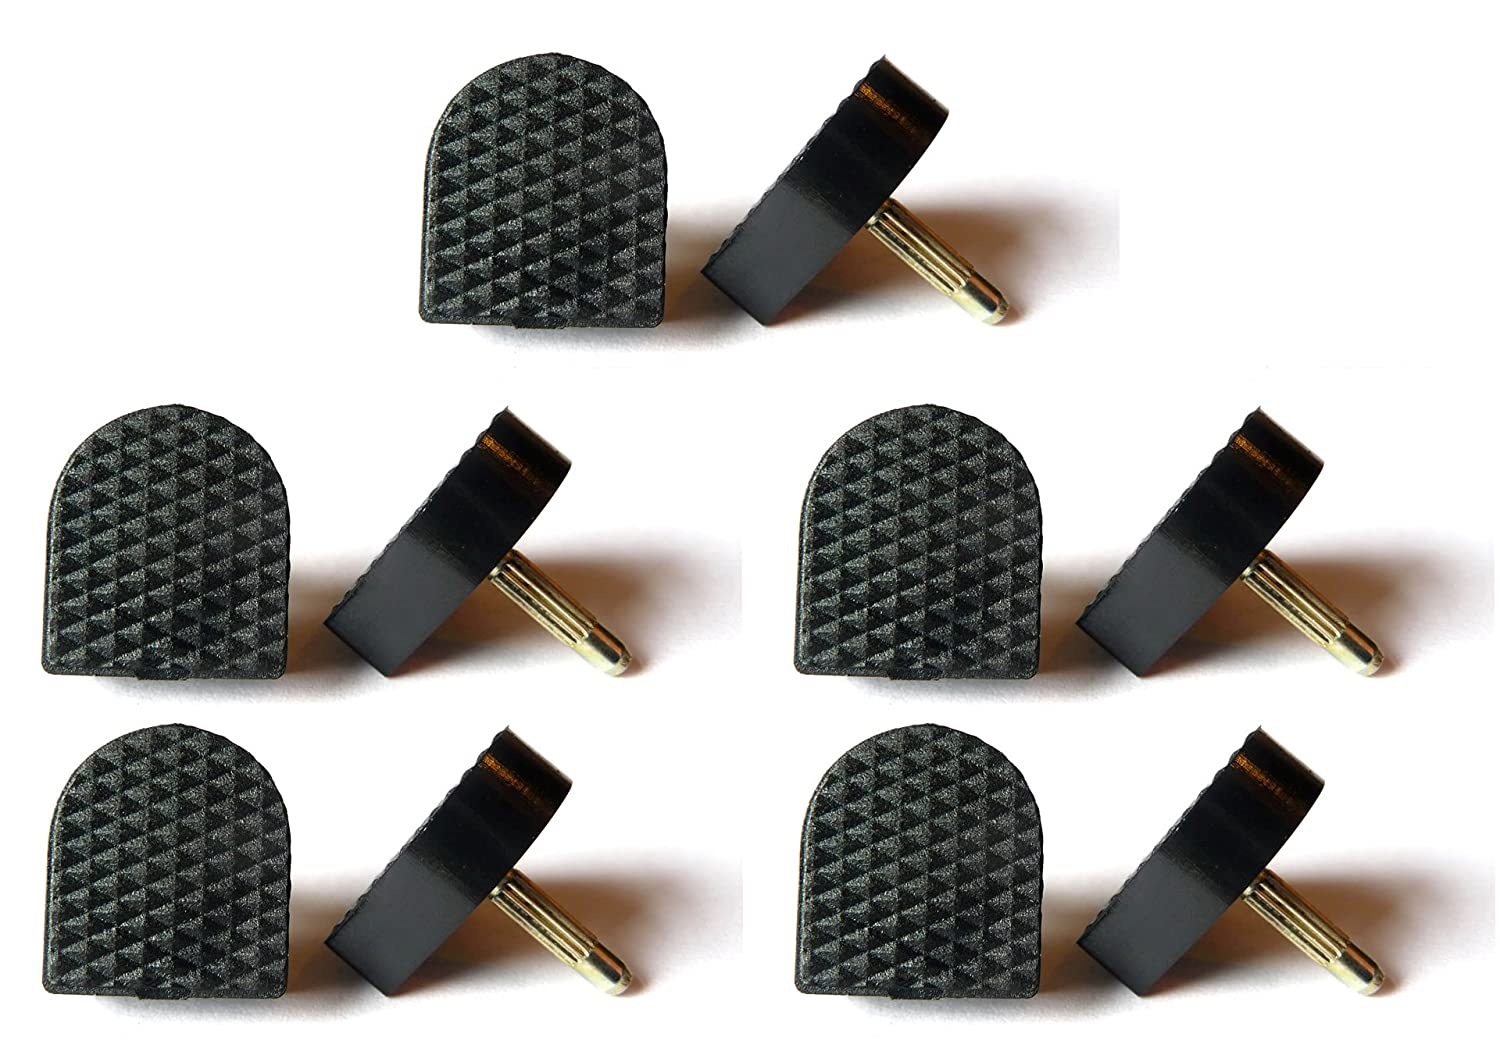 5x Pairs Black Replacement Stiletto High Heel Tips - 16mm x 18.5mm (5/8 inch) - U-Shape (Pair) The Little Cobbler